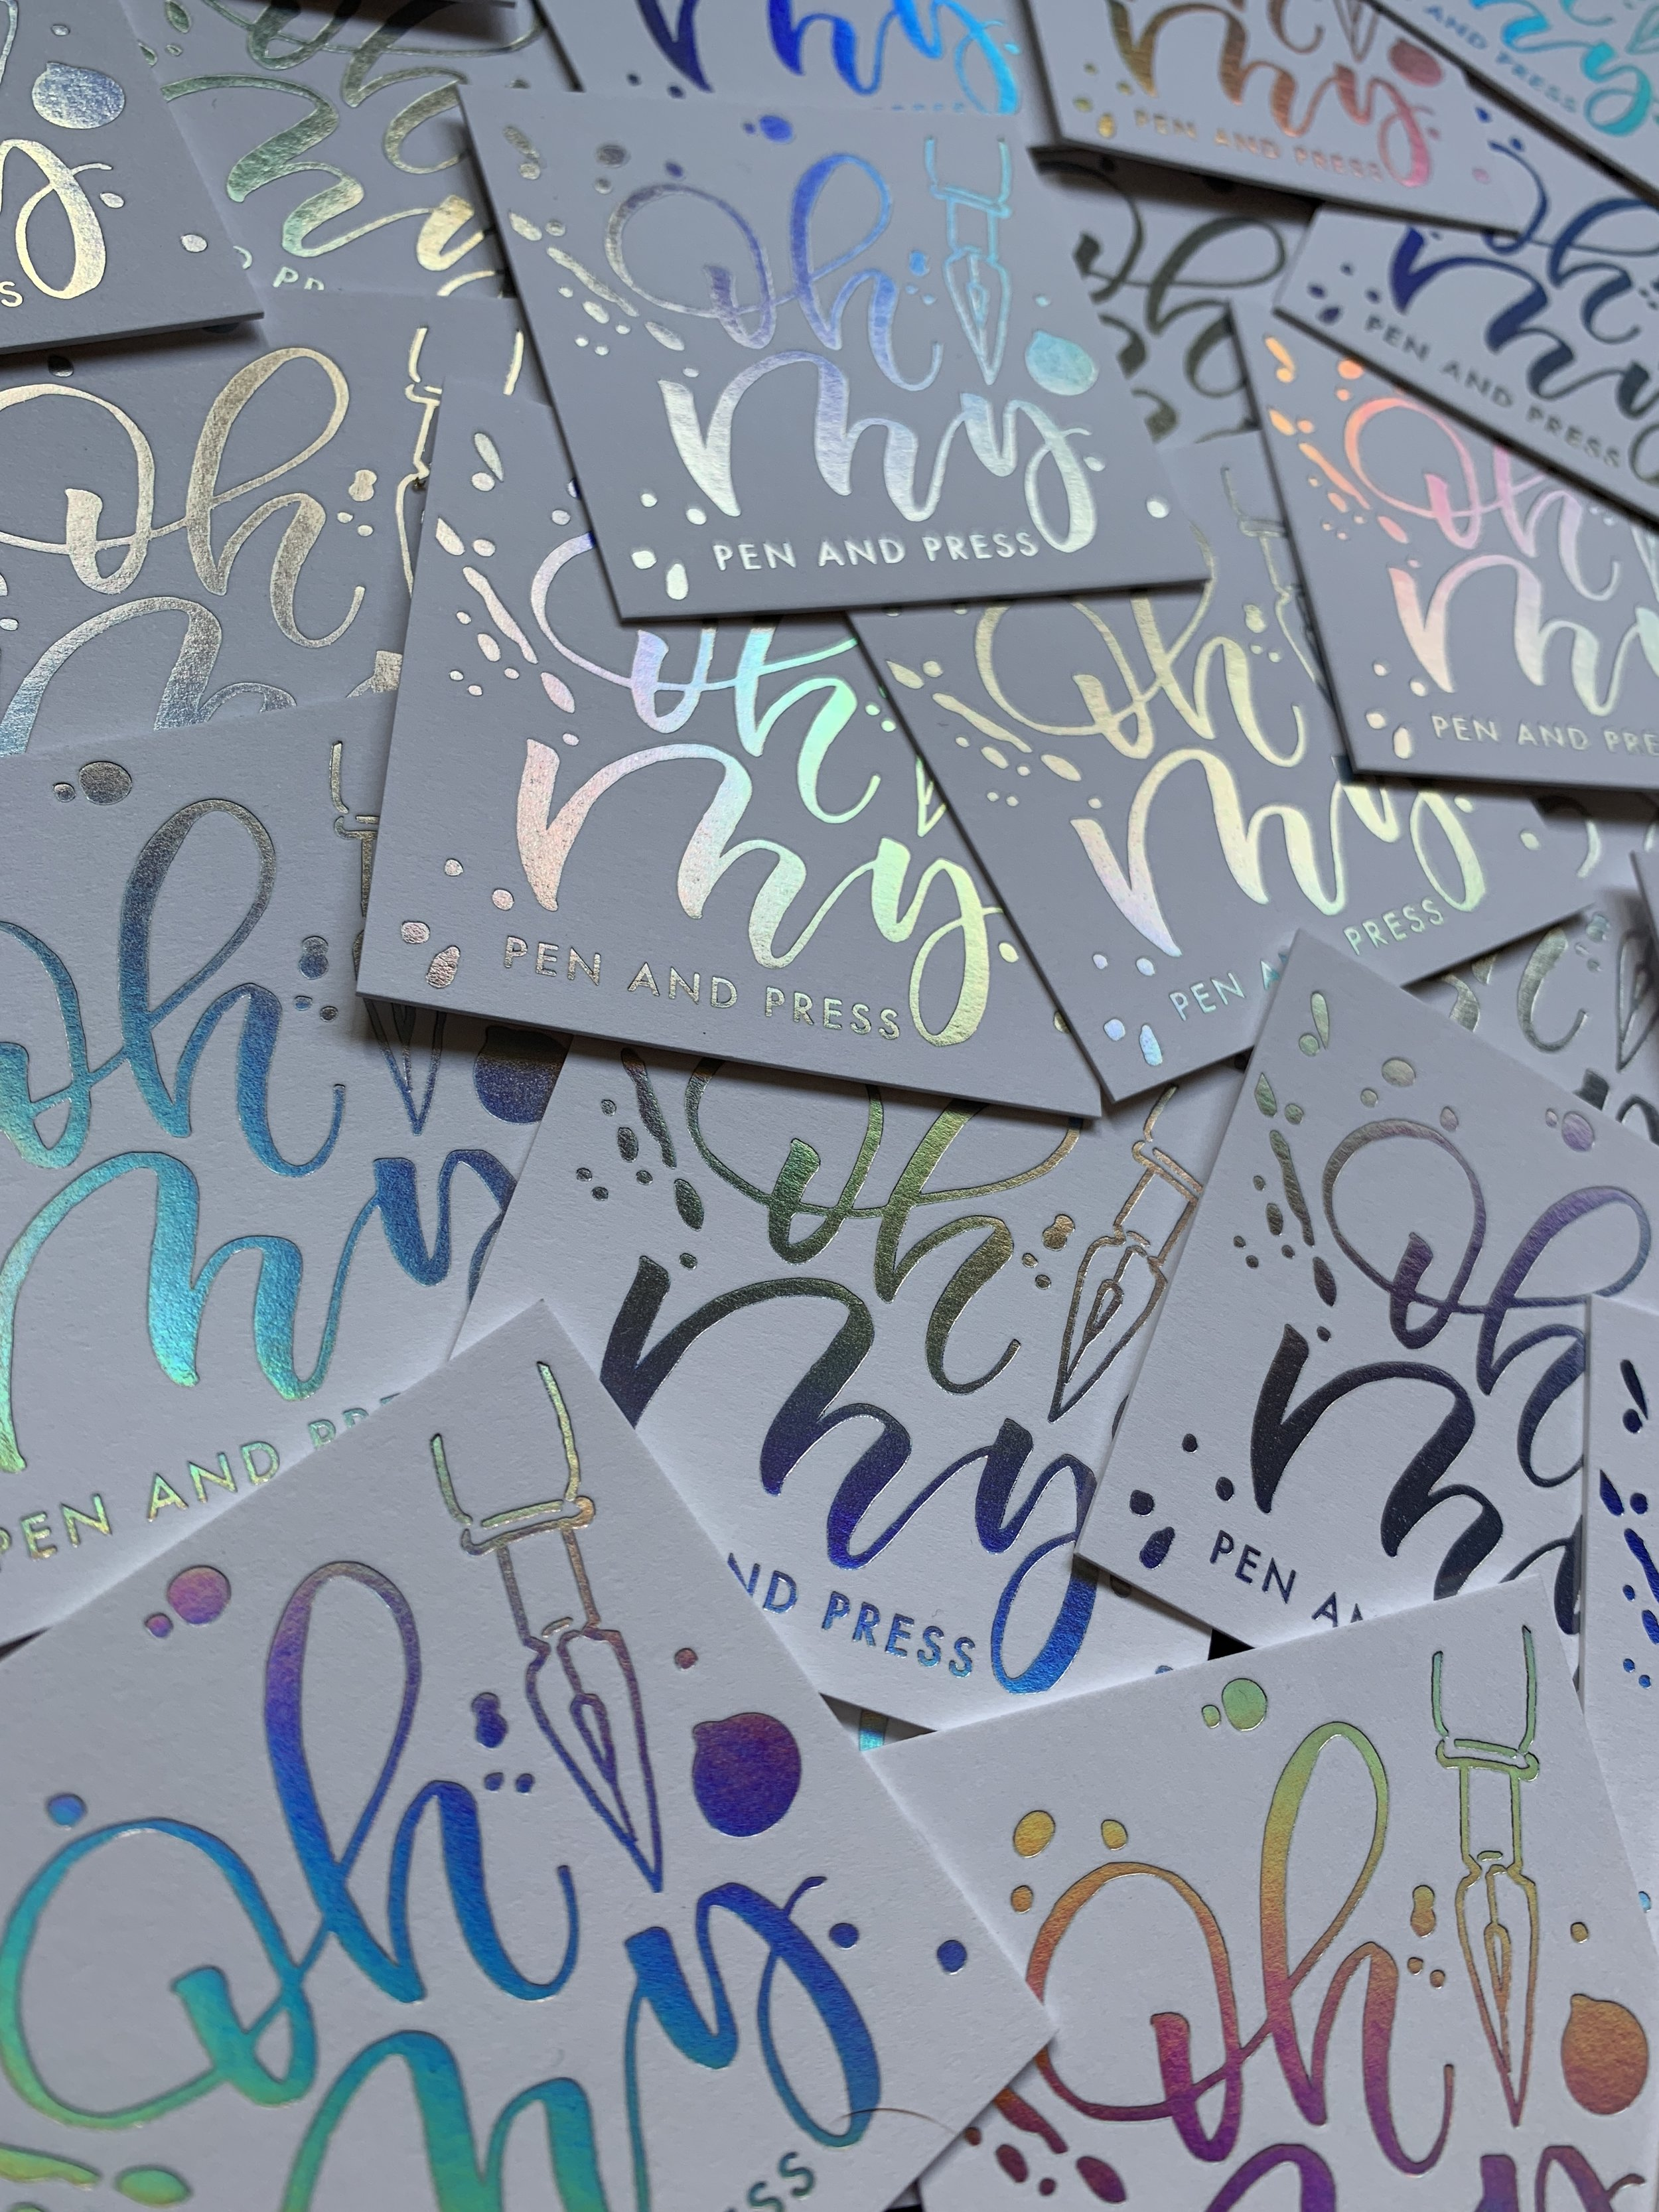 Square and holographic foil business cards